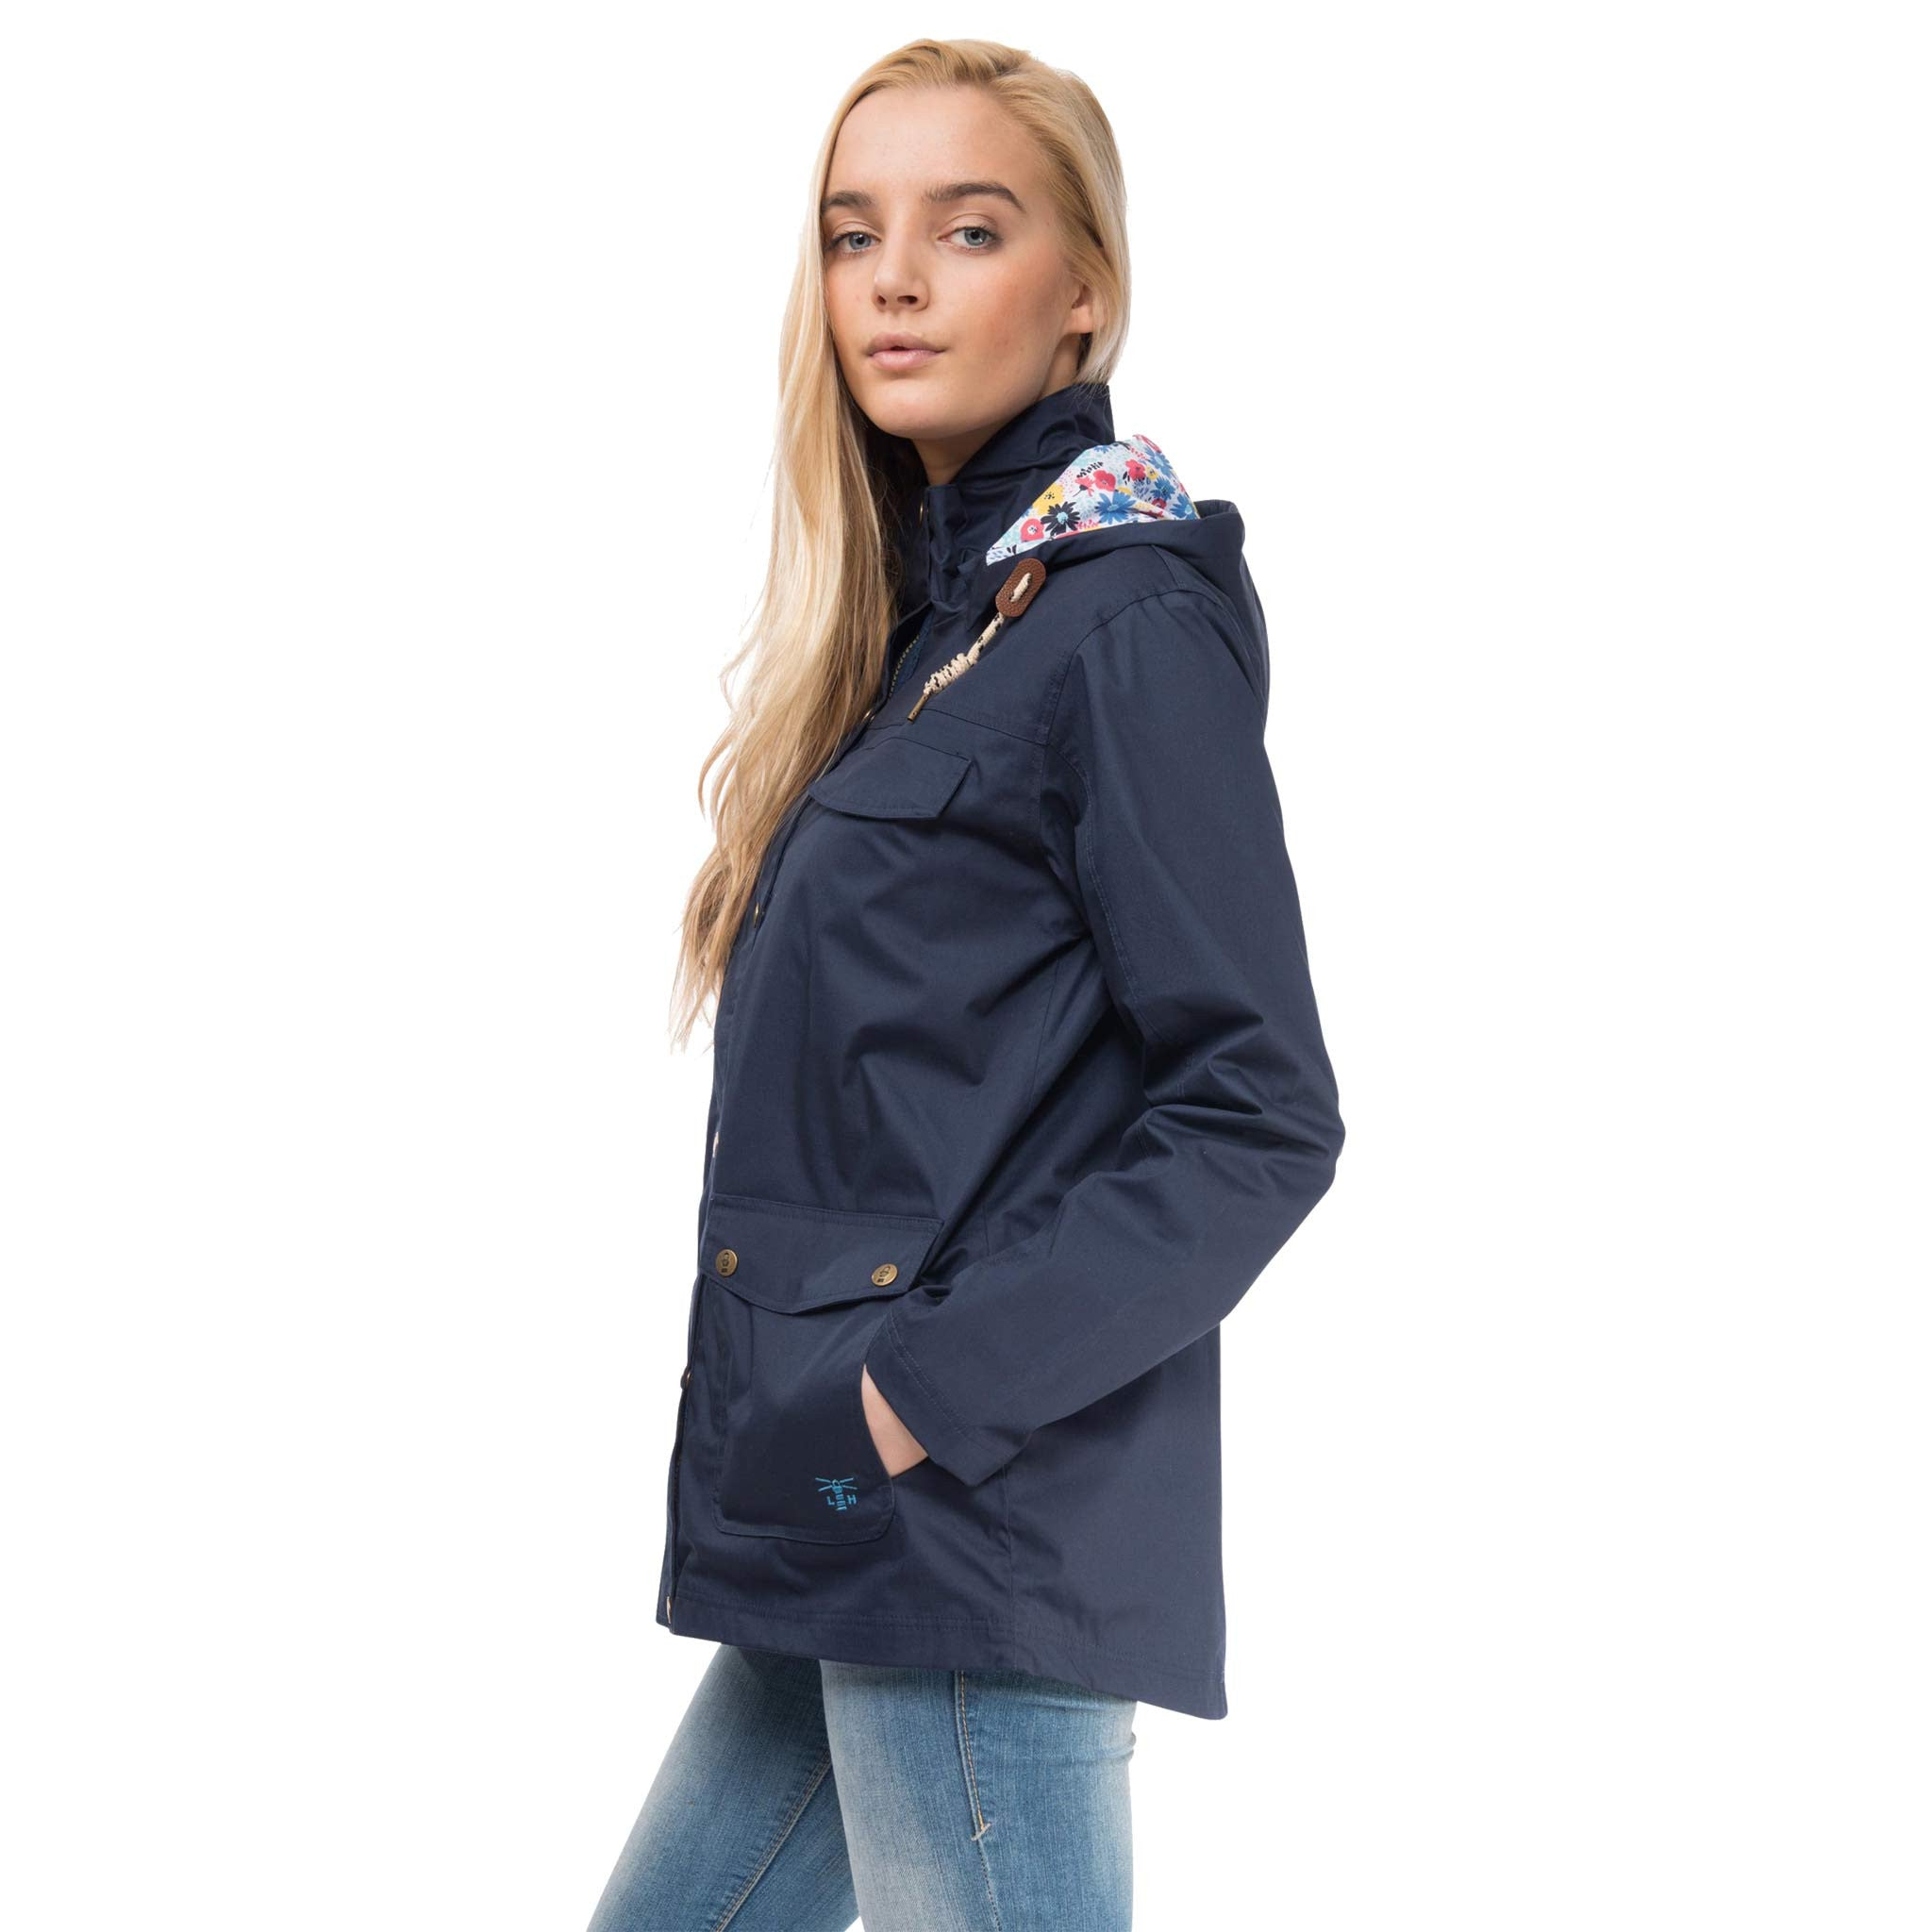 Romy Womens Waterproof Jacket with Cotton Outer in Night Sky, Modelled Side View | Lighthouse